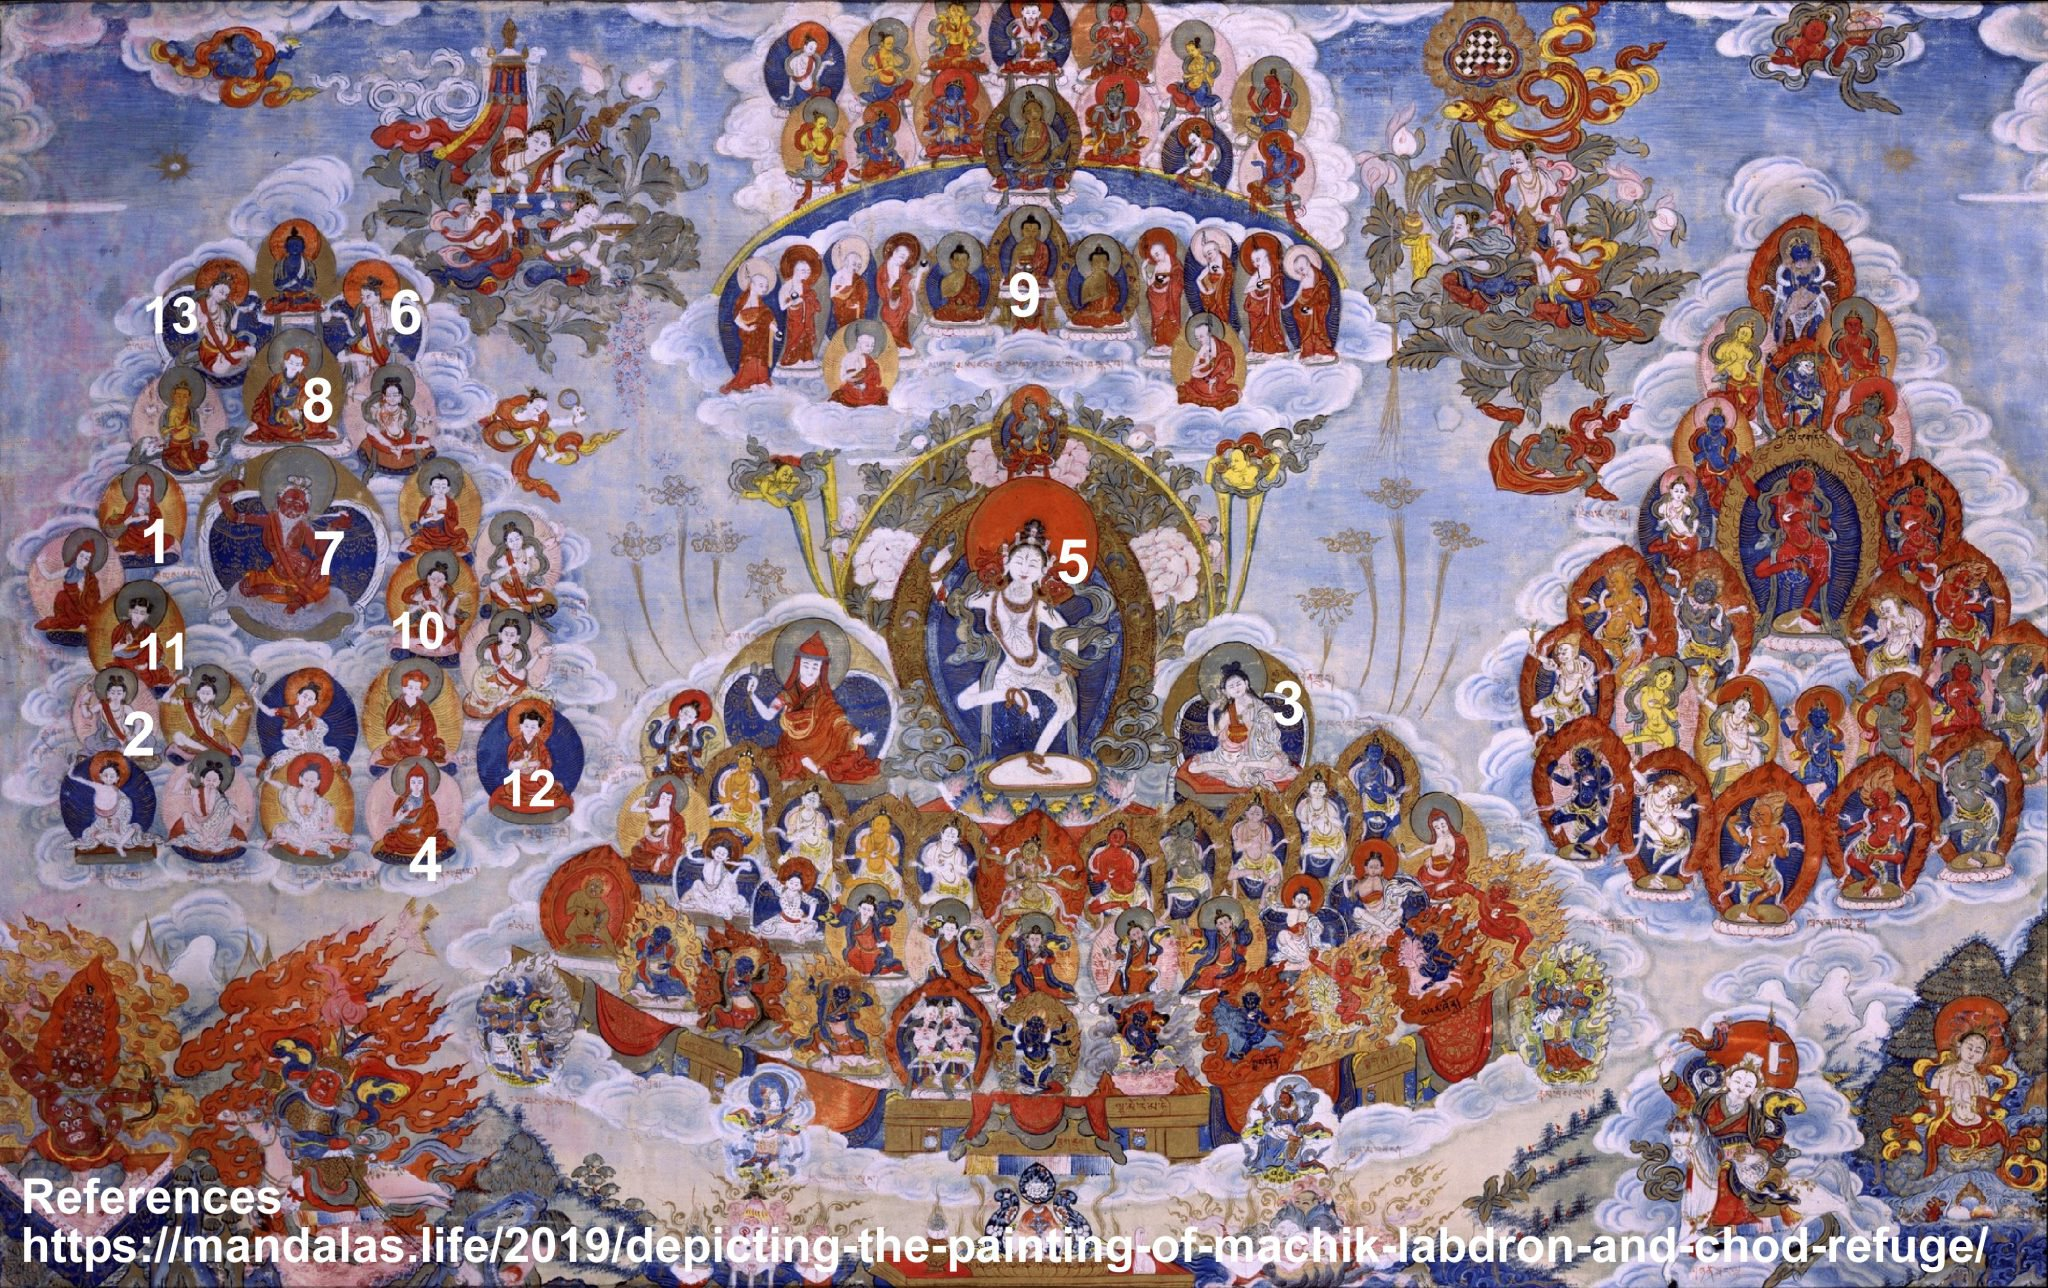 Depicting the Painting of Machik Labdron and Chod Refuge